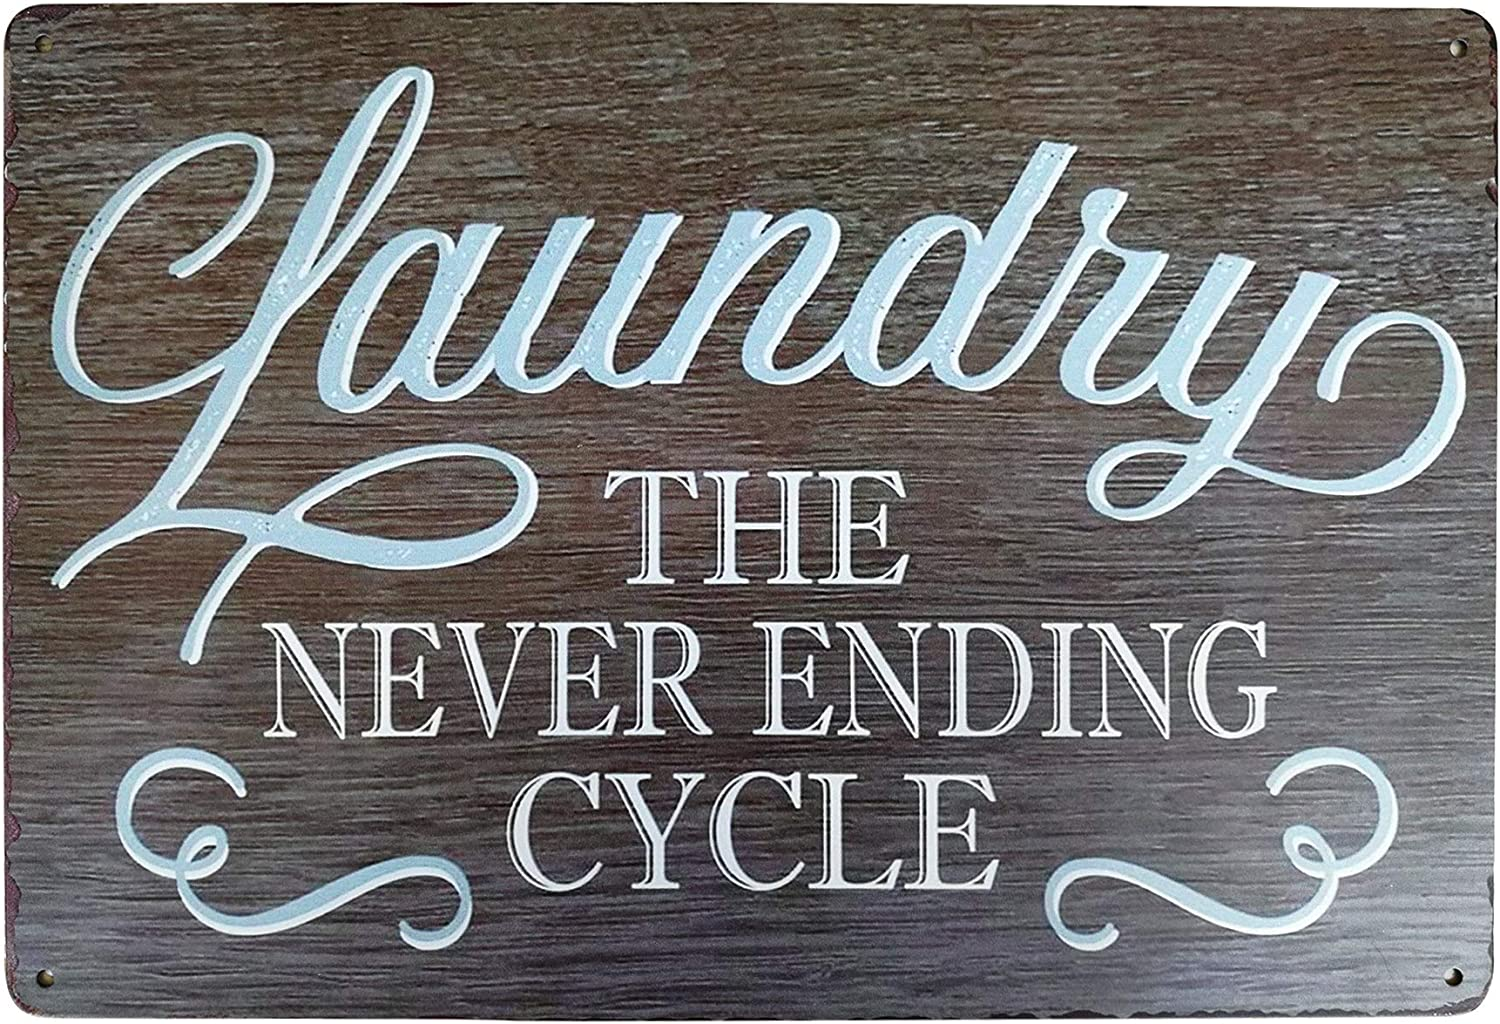 PXIYOU Rustic Laundry Room Wall Decor Vintage Metal Sign The Never Ending Cycle Bathroom Wash Room Signs Farmhouse Country Home Decor 8X12Inch